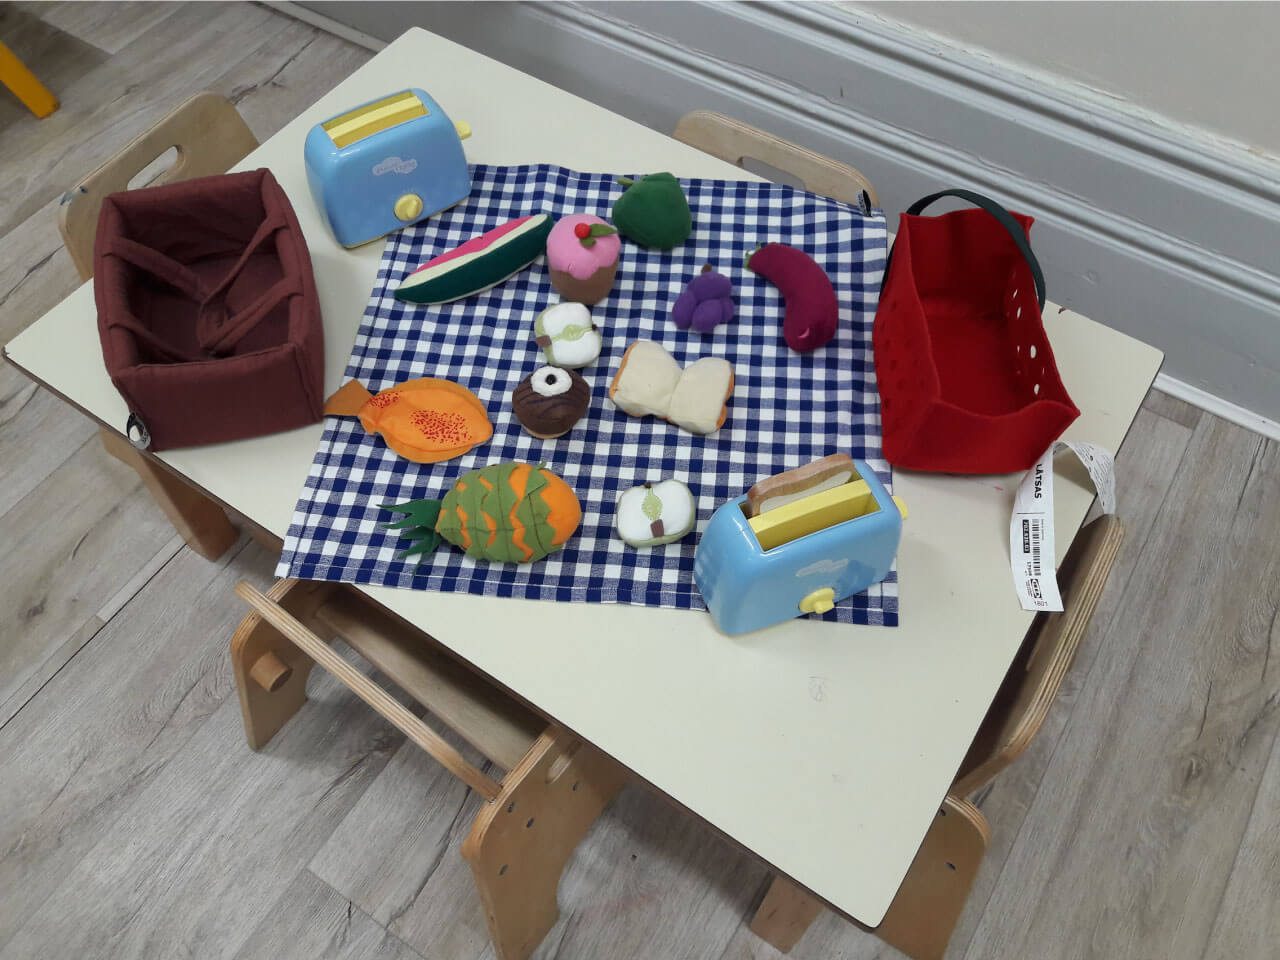 Soft toys made to look like food to help children learn